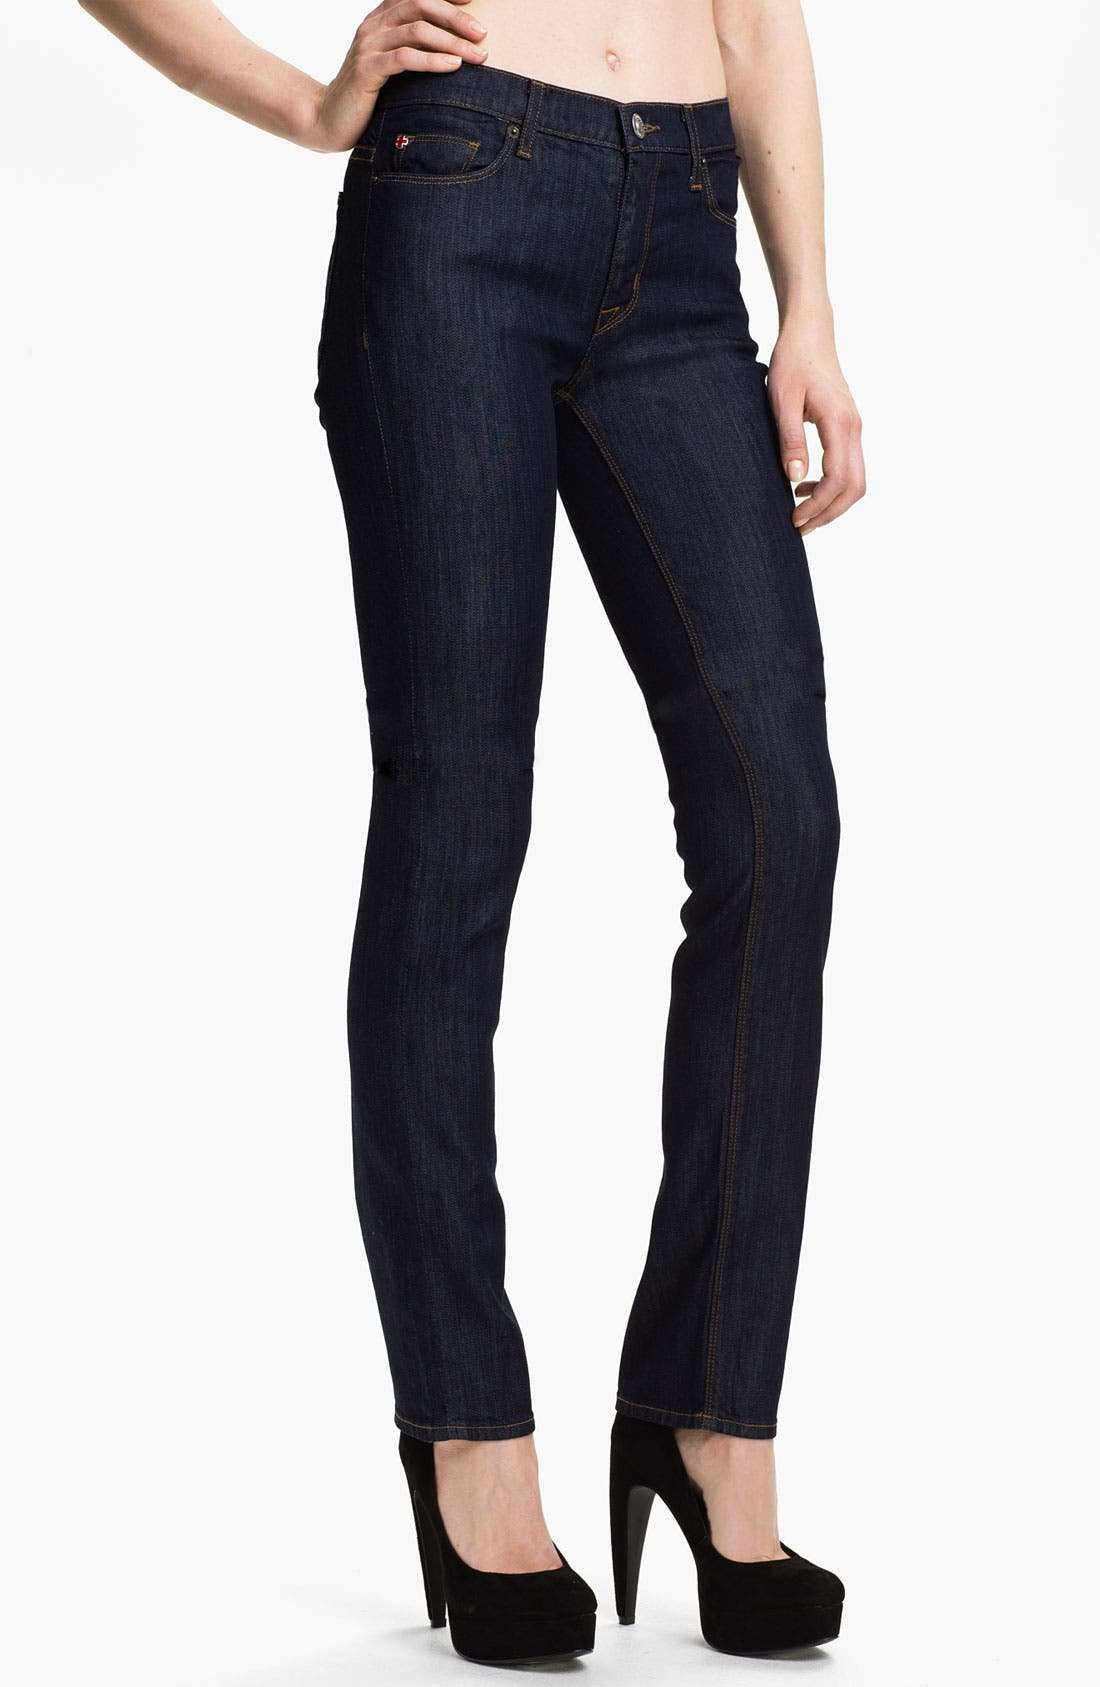 Main Image - Hudson Jeans 'Tilda' Straight Leg Stretch Jeans (Finch)